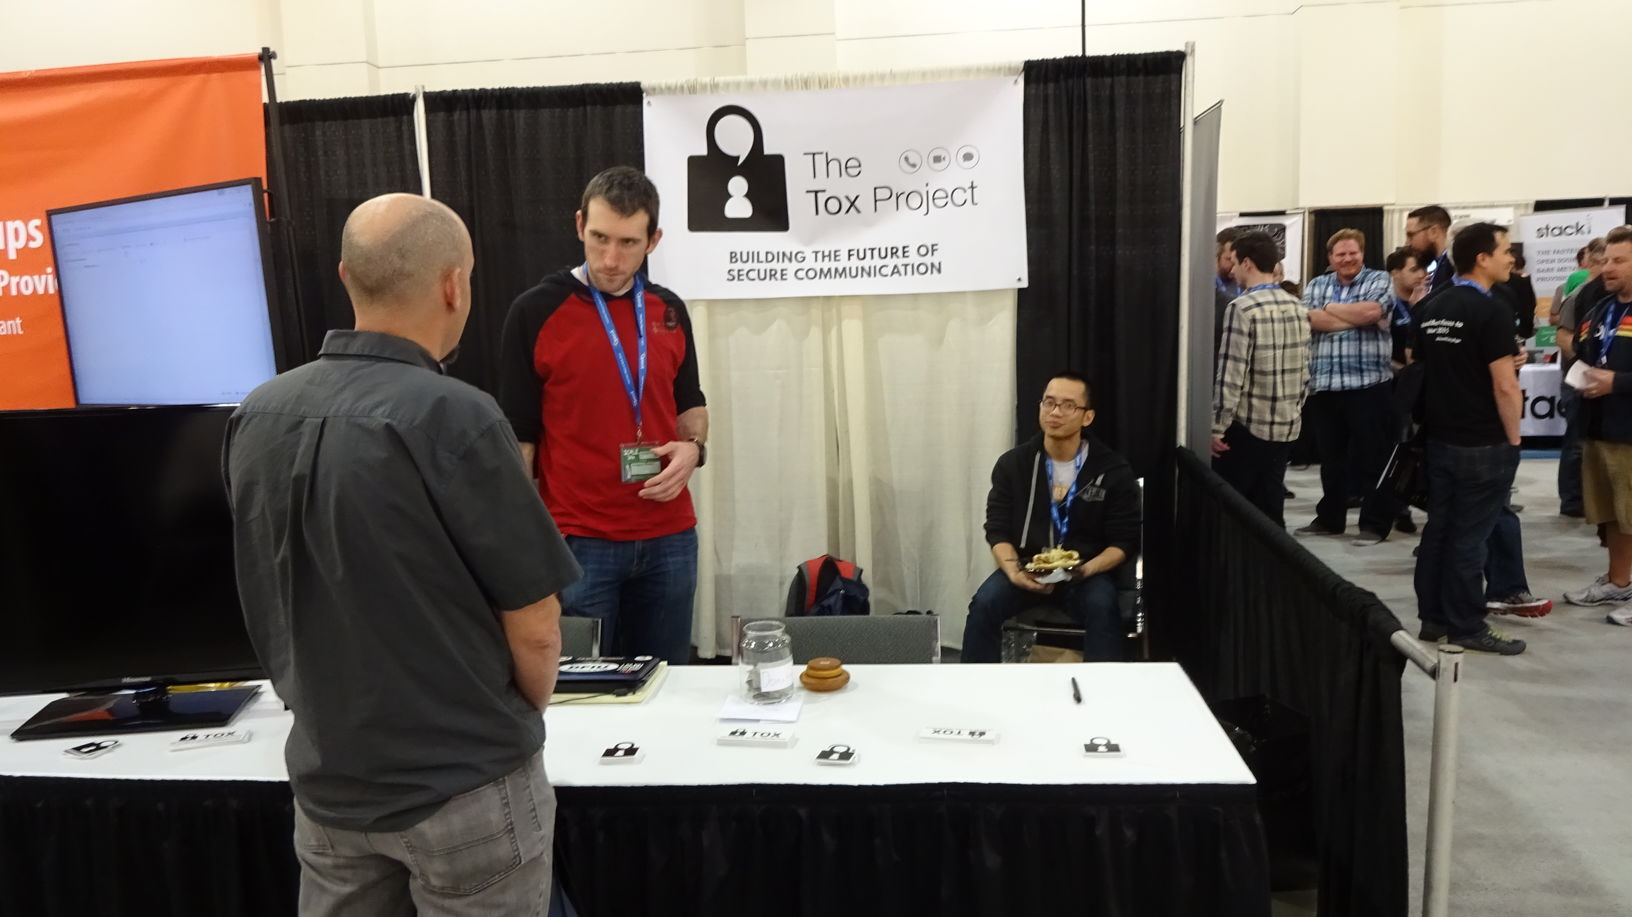 Greg Mullen (left) and Chuong Vu (right) explaining Tox to an expo attendee